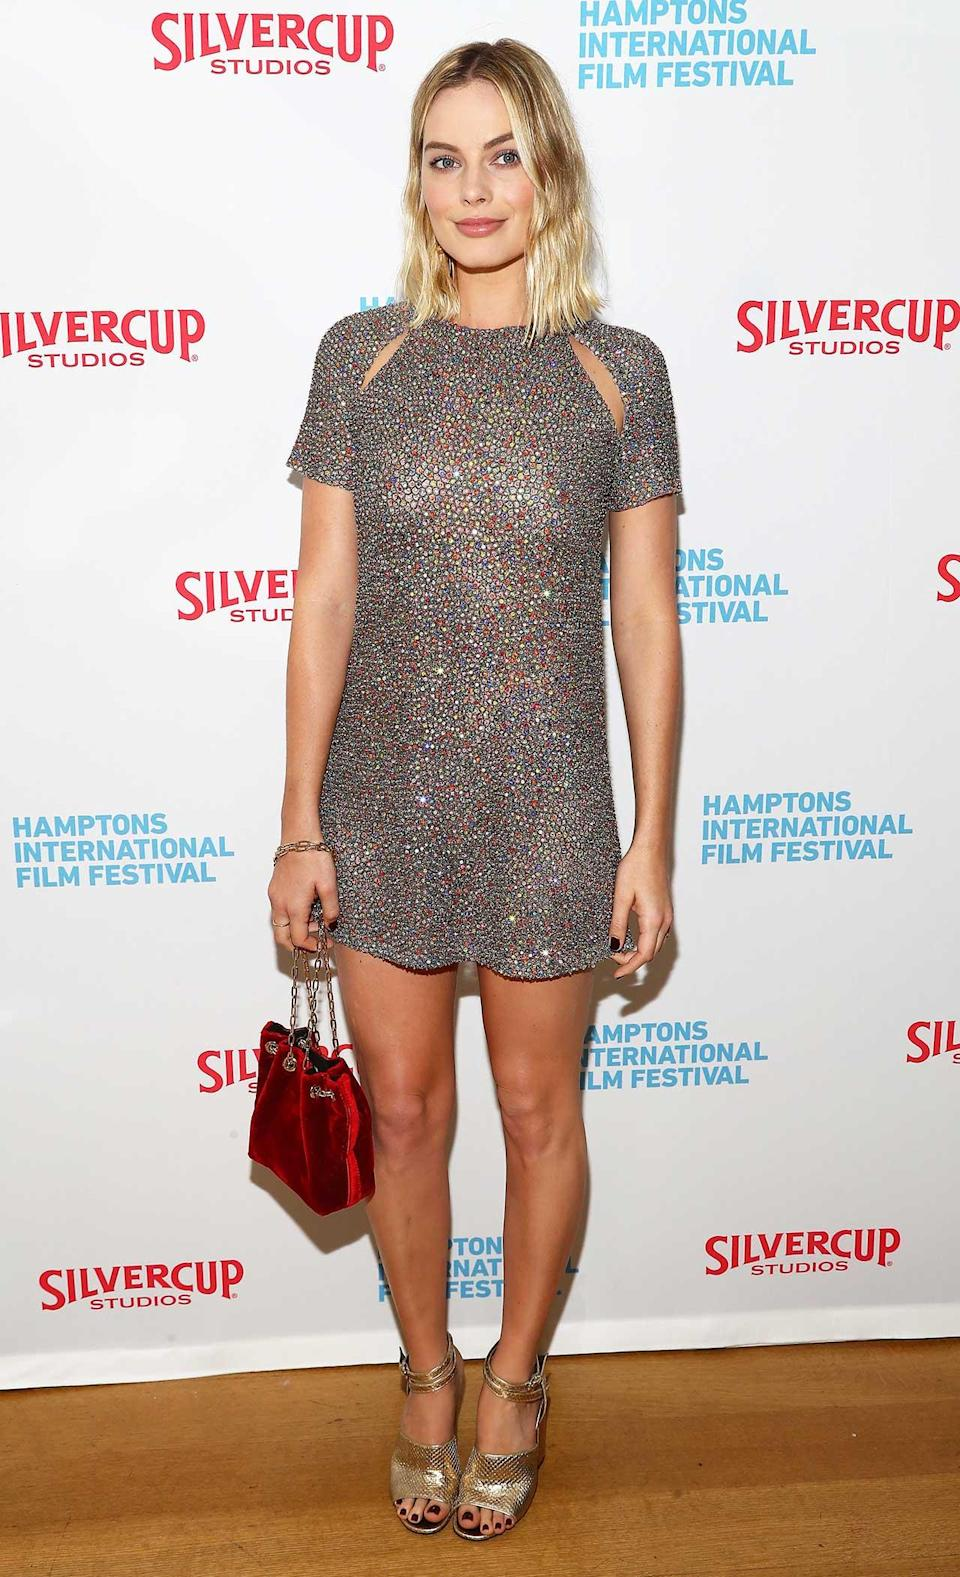 """<h2>In A Dior Dress, Alumnae Heels And A M2Malletier Bag</h2> <p>At the Hamptons International Film Festival, 2017</p> <h4>Getty Images</h4> <p> <strong>Related Articles</strong> <ul> <li><a rel=""""nofollow noopener"""" href=""""http://thezoereport.com/fashion/style-tips/box-of-style-ways-to-wear-cape-trend/?utm_source=yahoo&utm_medium=syndication"""" target=""""_blank"""" data-ylk=""""slk:The Key Styling Piece Your Wardrobe Needs"""" class=""""link rapid-noclick-resp"""">The Key Styling Piece Your Wardrobe Needs</a></li><li><a rel=""""nofollow noopener"""" href=""""http://thezoereport.com/fashion/shopping/everything-need-let-zoe-giveaway/?utm_source=yahoo&utm_medium=syndication"""" target=""""_blank"""" data-ylk=""""slk:Everything You Need From Our Let It Zoe Giveaway"""" class=""""link rapid-noclick-resp"""">Everything You Need From Our Let It Zoe Giveaway</a></li><li><a rel=""""nofollow noopener"""" href=""""http://thezoereport.com/beauty/celebrity-beauty/josephine-skriver-makeup-tutorial-video-vogue/?utm_source=yahoo&utm_medium=syndication"""" target=""""_blank"""" data-ylk=""""slk:A Victoria's Secret Model Shows Us How To Get Our Lips To Her Level"""" class=""""link rapid-noclick-resp"""">A Victoria's Secret Model Shows Us How To Get Our Lips To Her Level</a></li> </ul> </p>"""